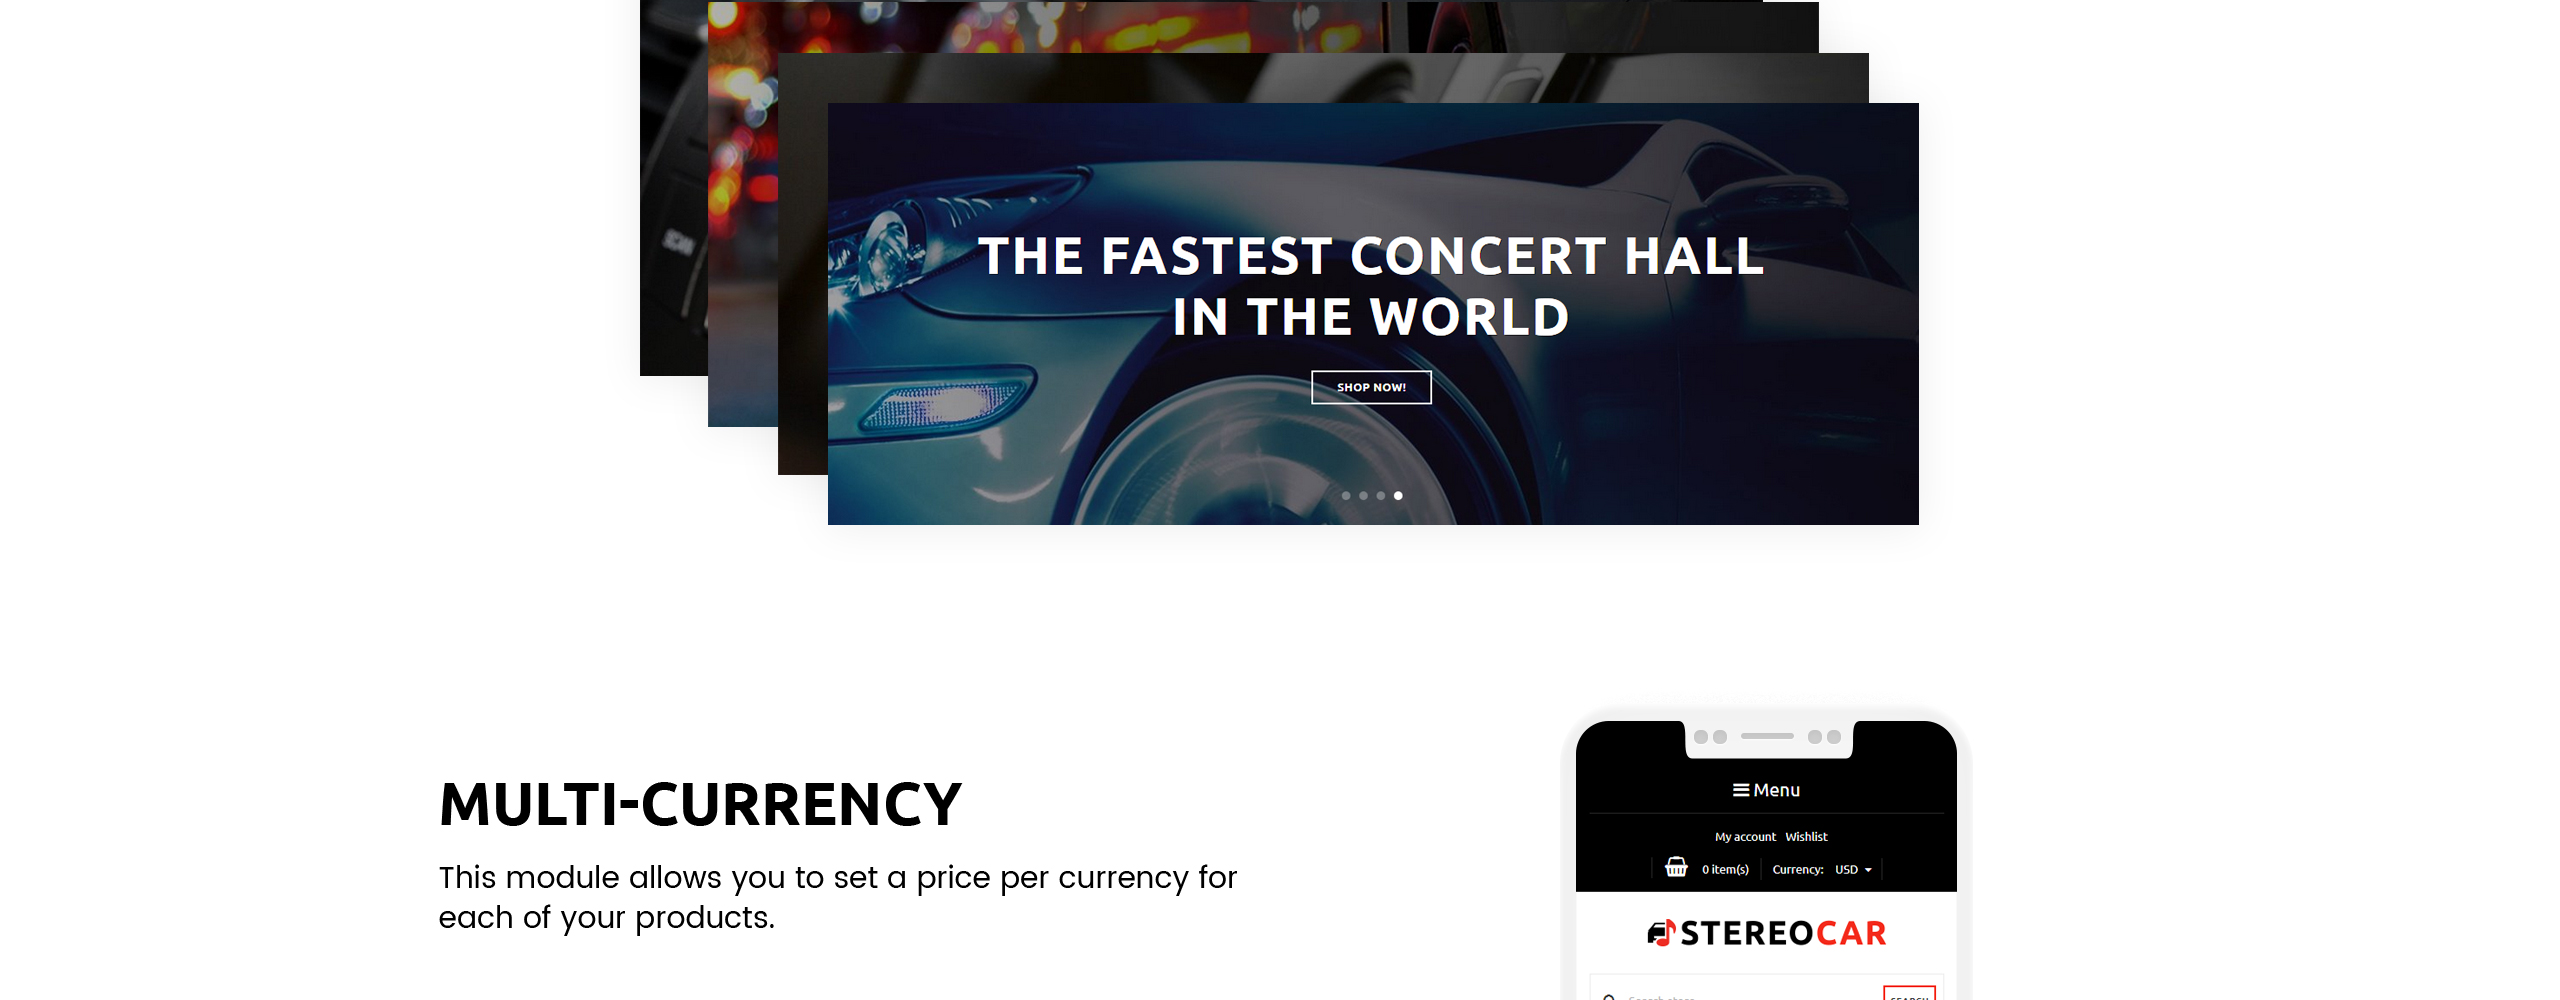 Stereocar - Efficient Automobiles Parts & Accessories Online Shopify Theme